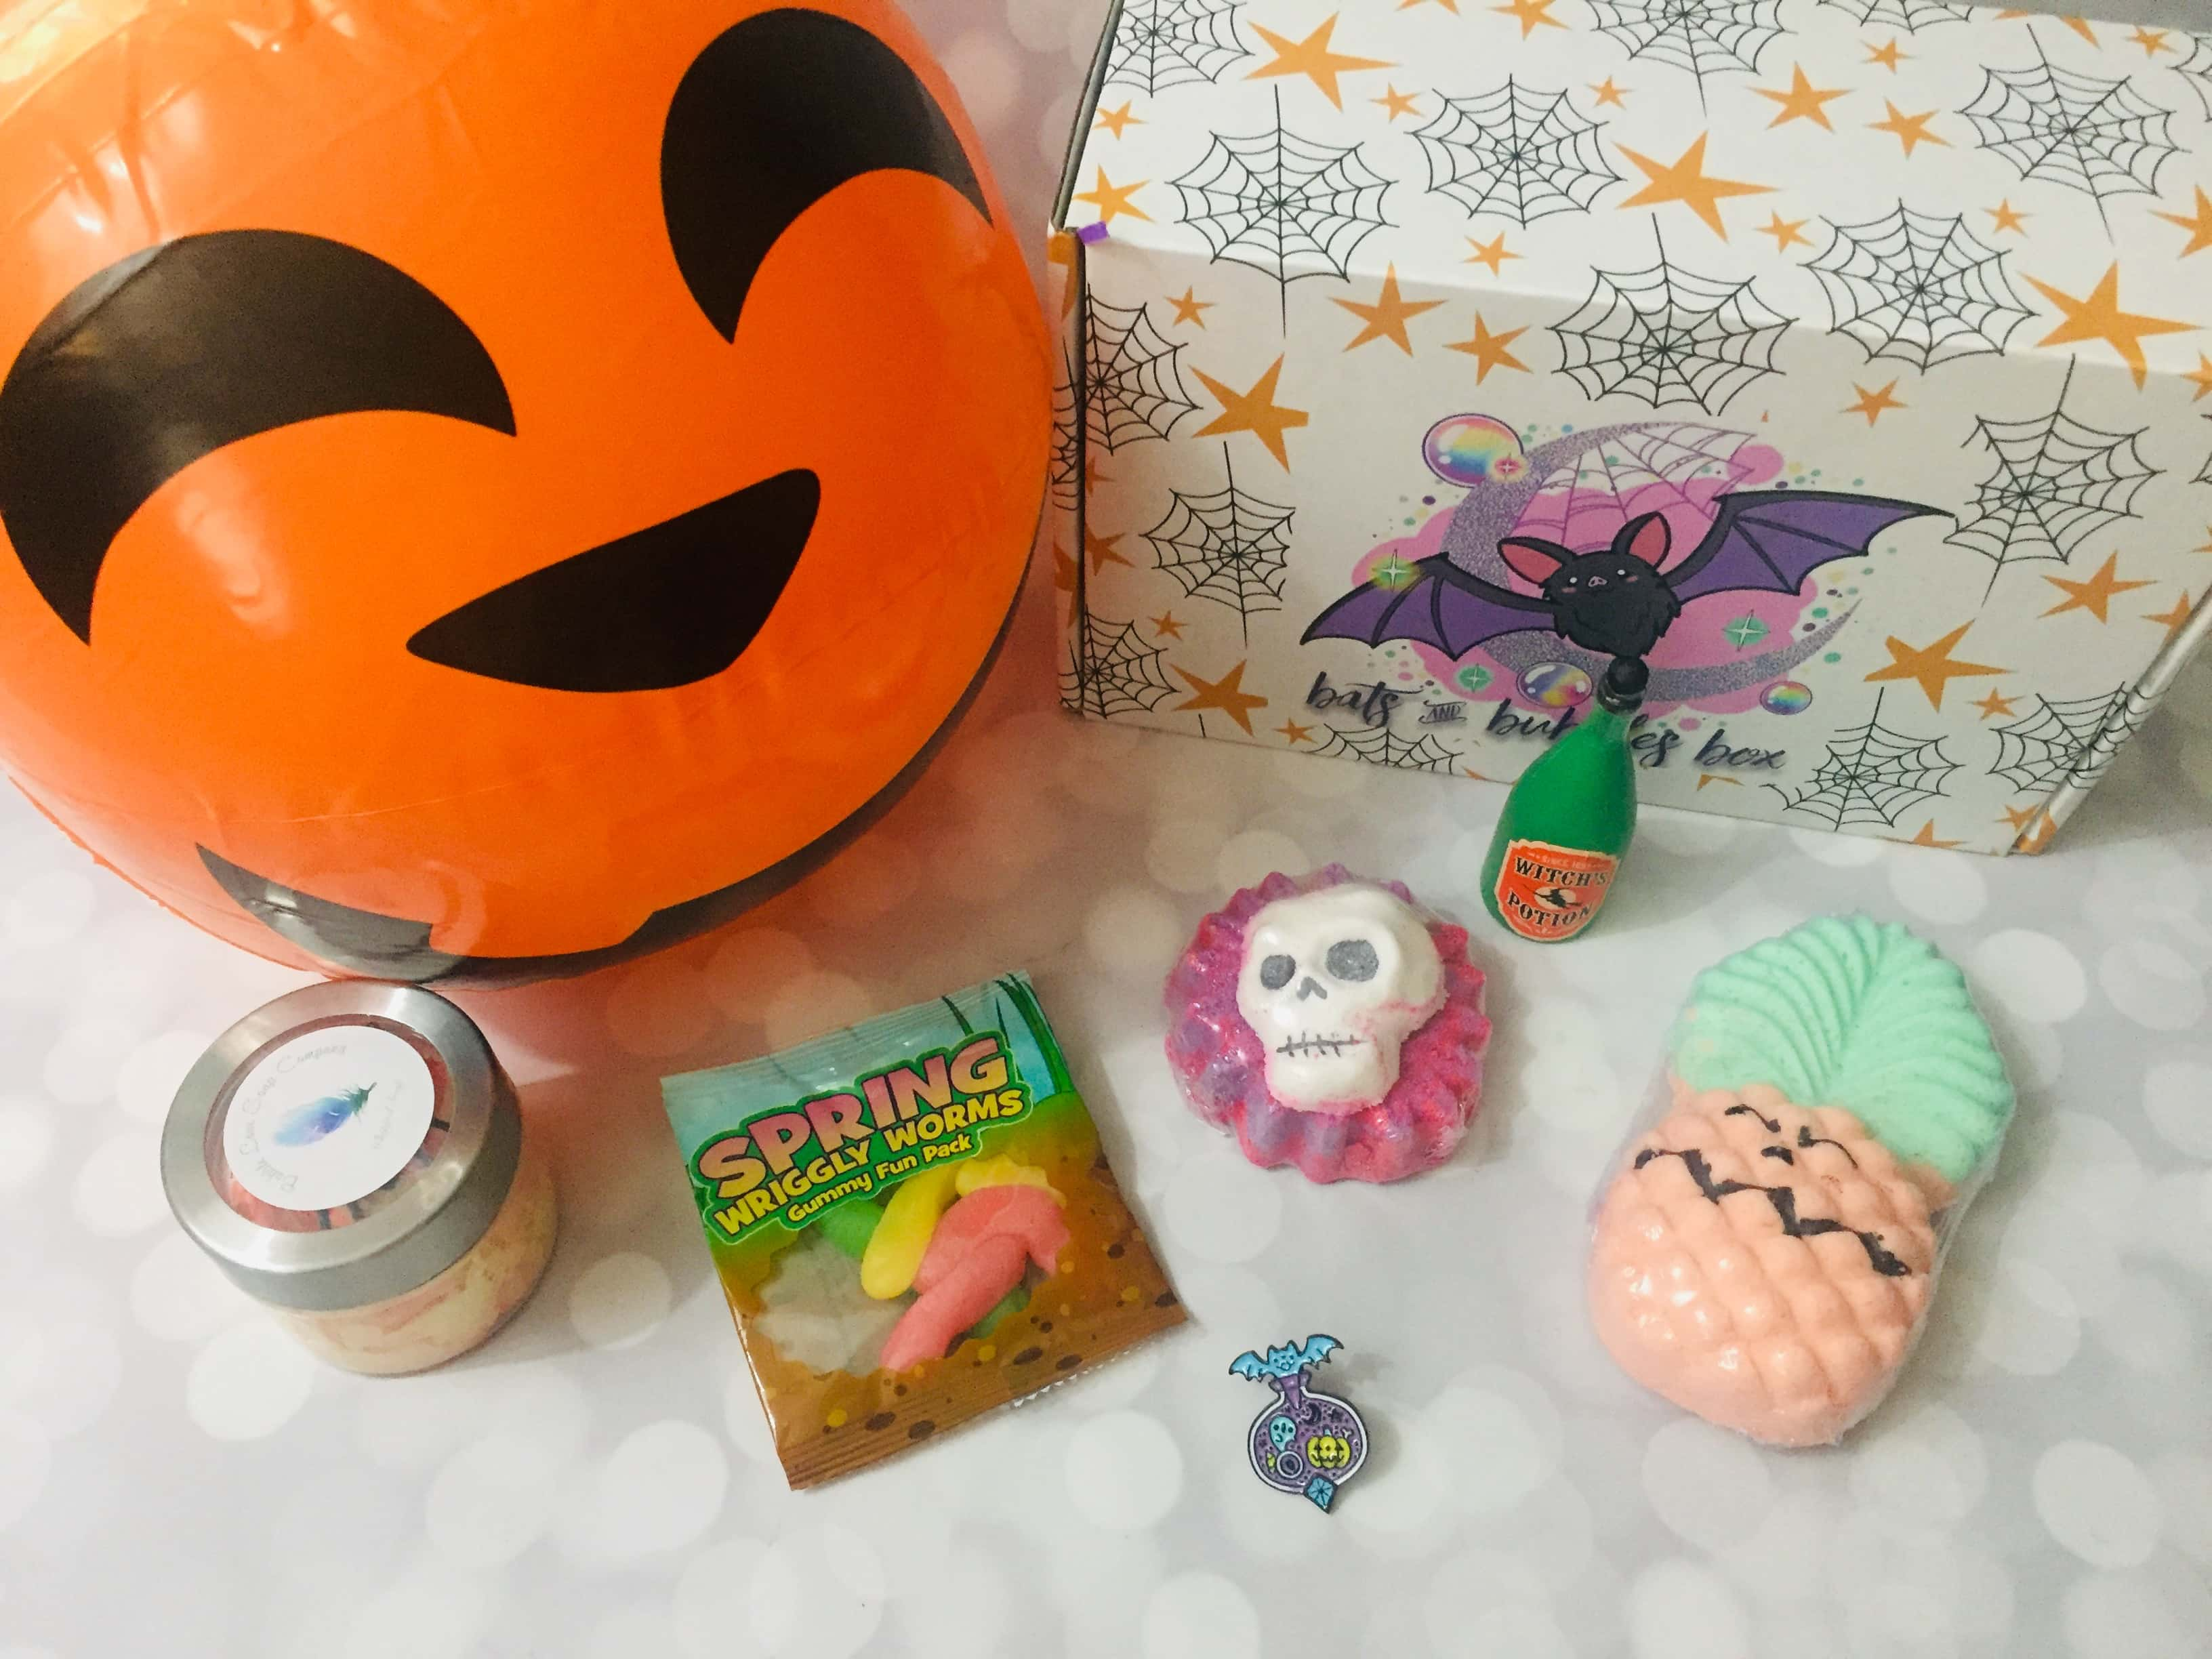 Bats and Bubbles July 2019 Subscription Box Review + Coupon!